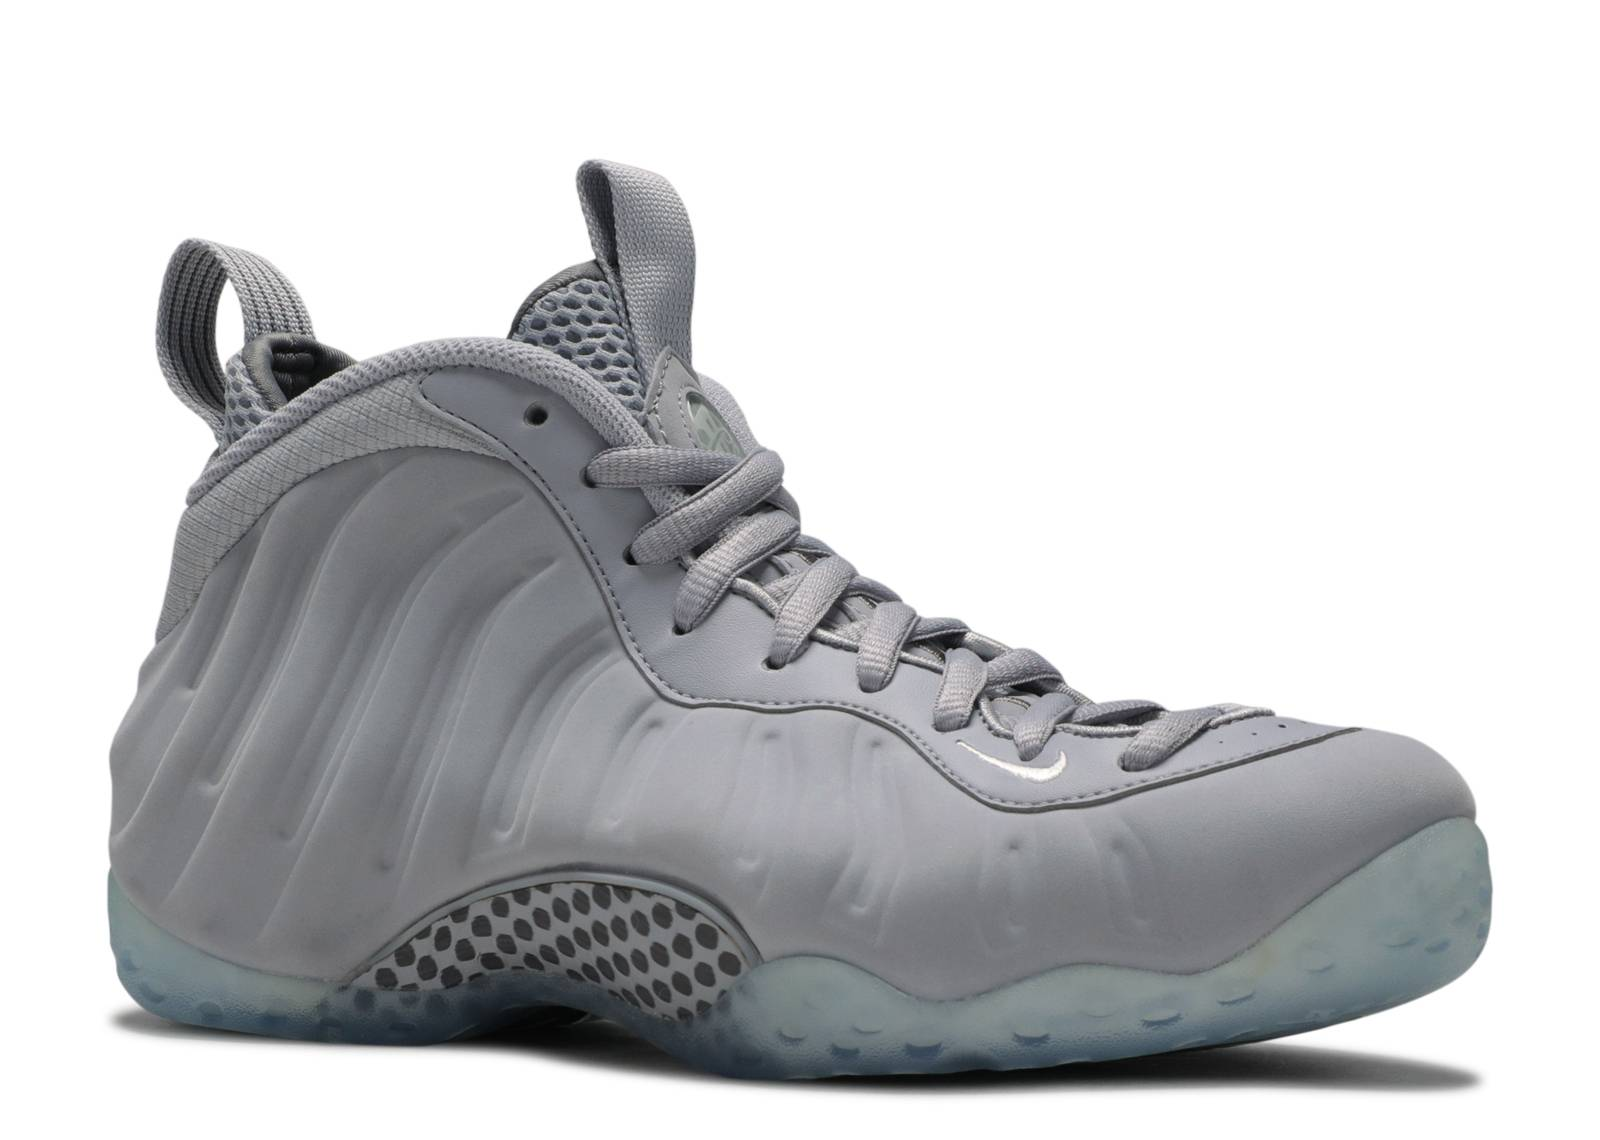 online retailer bf66a b323d Air Foamposite One Prm - Nike - 575420 007 - wolf grey white-cool grey-blk    Flight Club